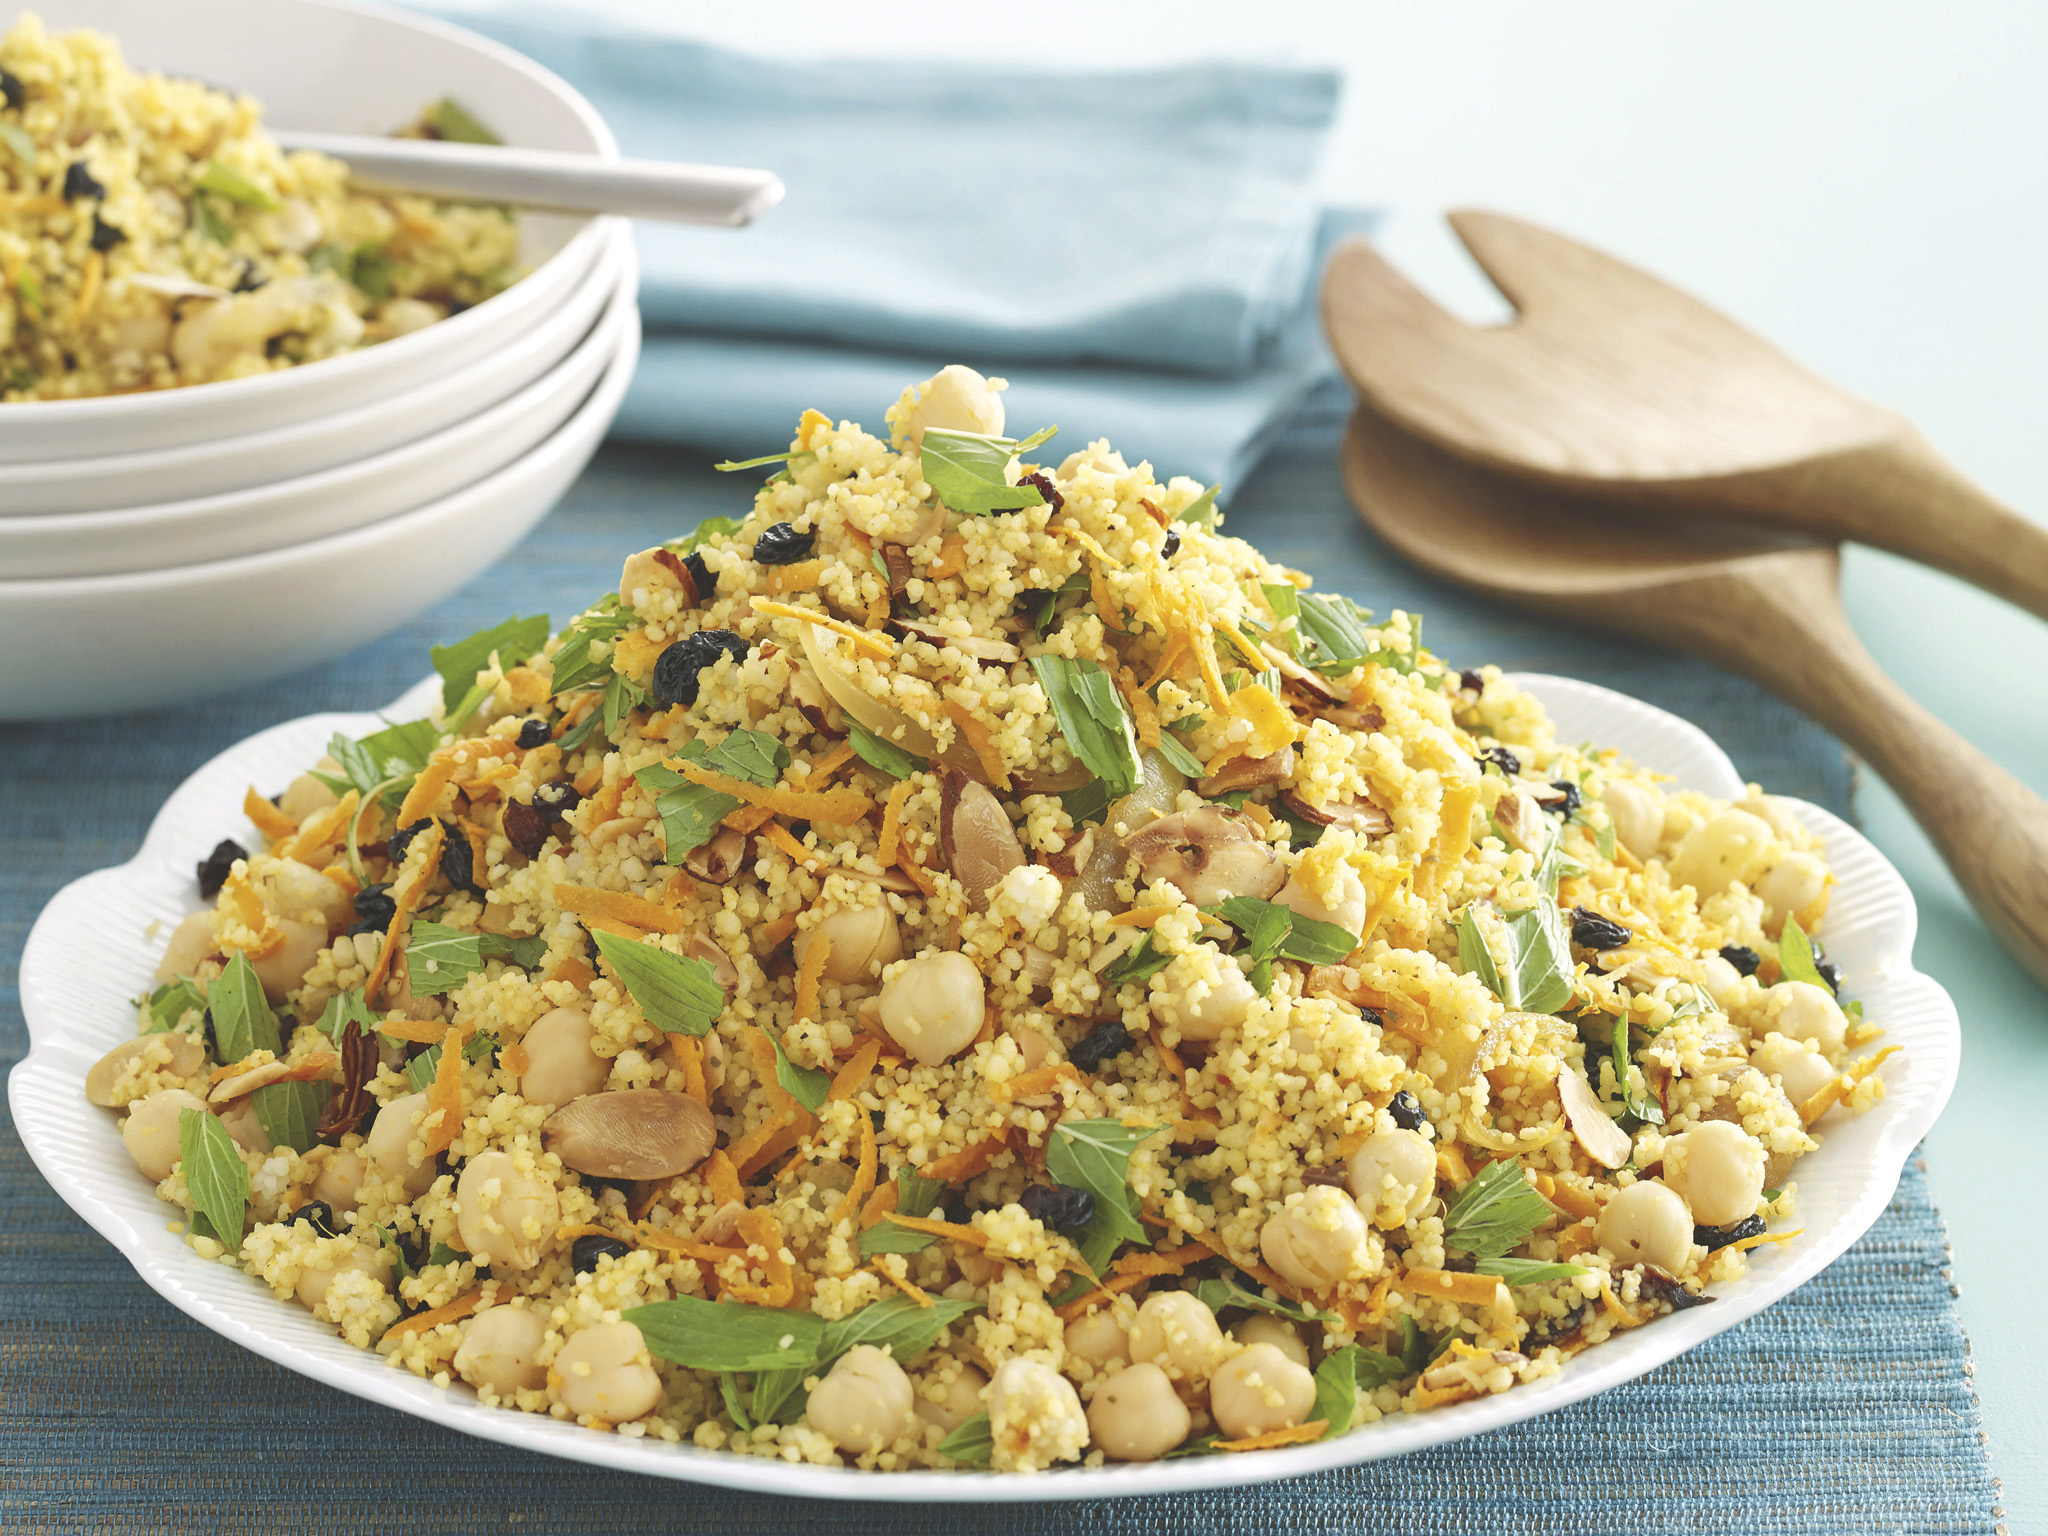 Spiced Couscous and Chickpea Salad Recipe recommend